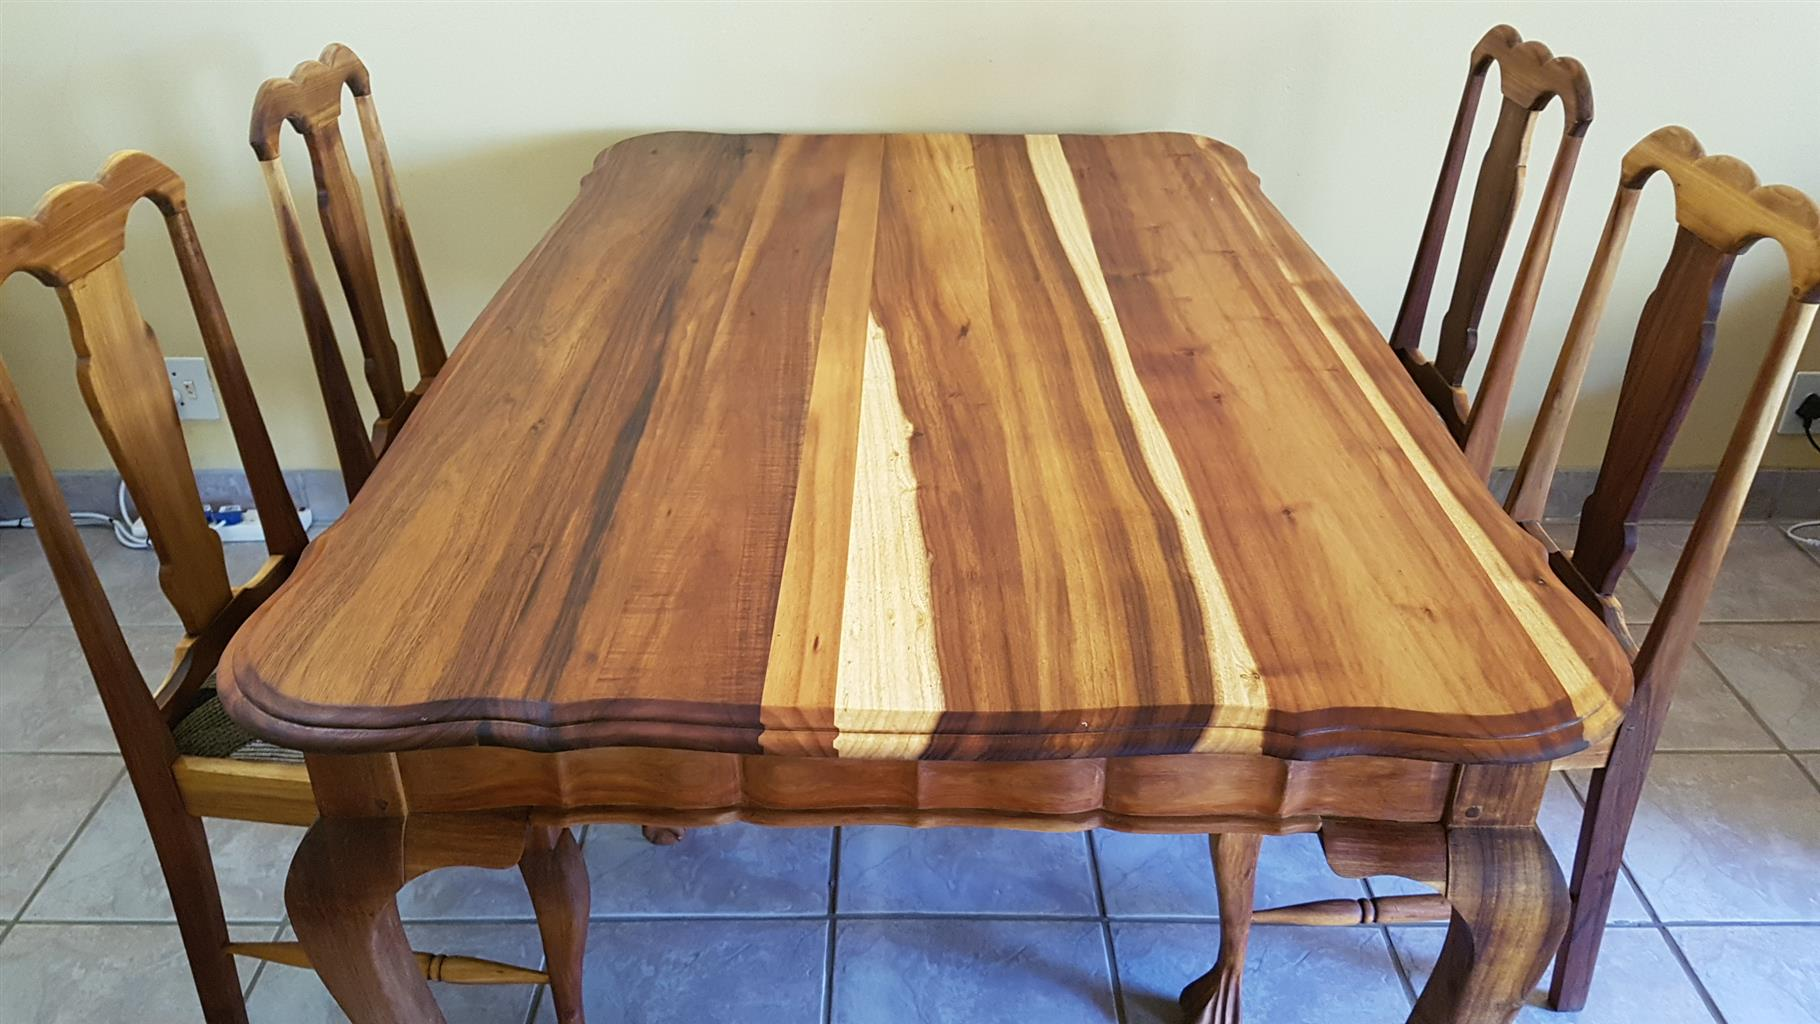 KIAAT Dining table & chairs.